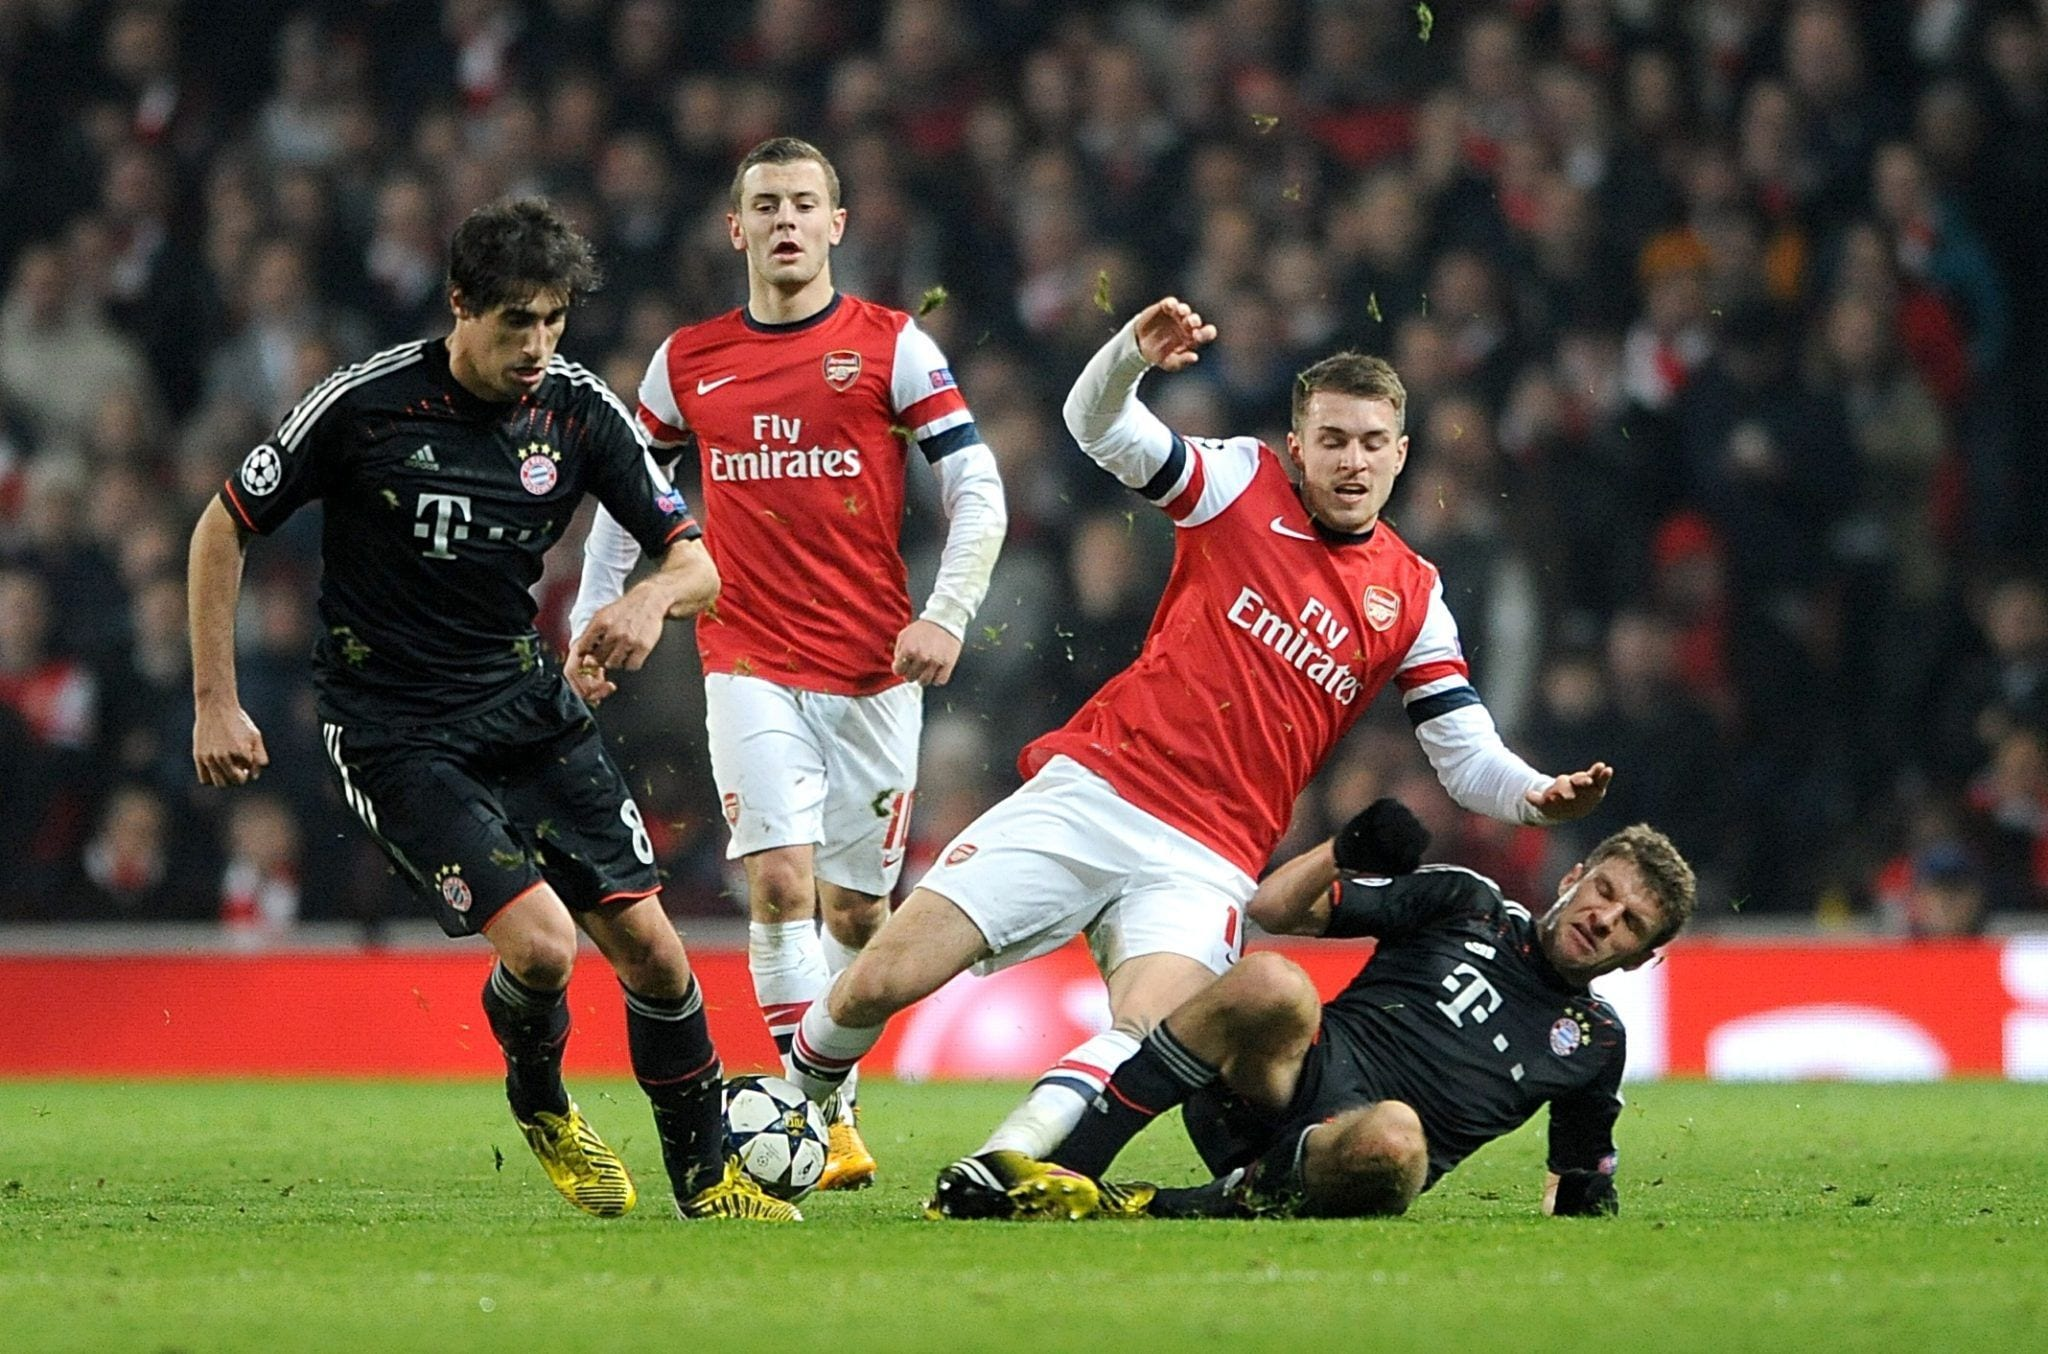 Bayern Munich's Thomas Muller (right) and Arsenal's Aaron Ramsey battle for the ball during the UEFA Champions League match at Emirates Stadium, London. PRESS ASSOCIATION Photo. Picture date: Tuesday February 19, 2013. See PA story SOCCER Arsenal. Photo credit should read: Anthony Devlin/PA Wire